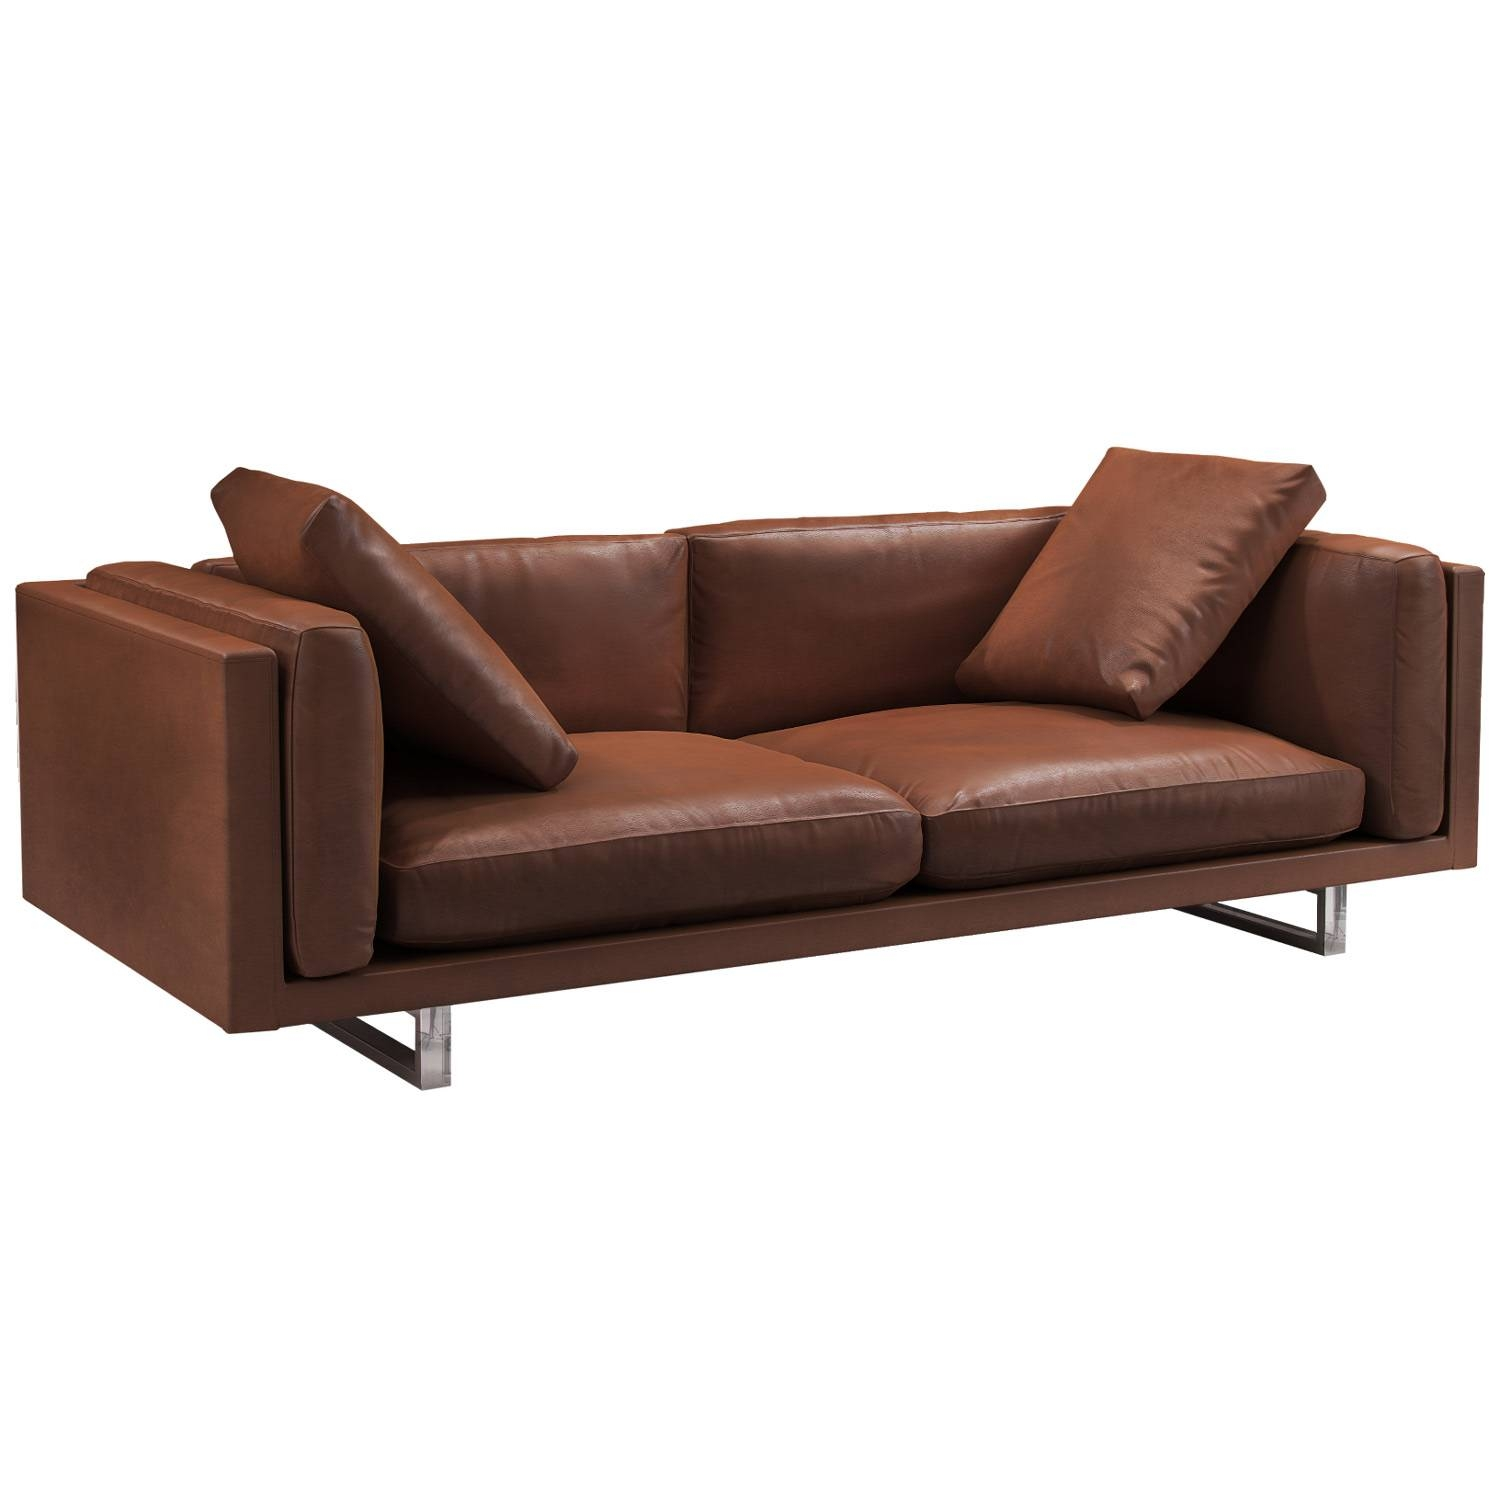 Modern Sofas, Modern Couches, Leather Sofas & More - Zinc Door with Mod Sofas (Image 11 of 30)